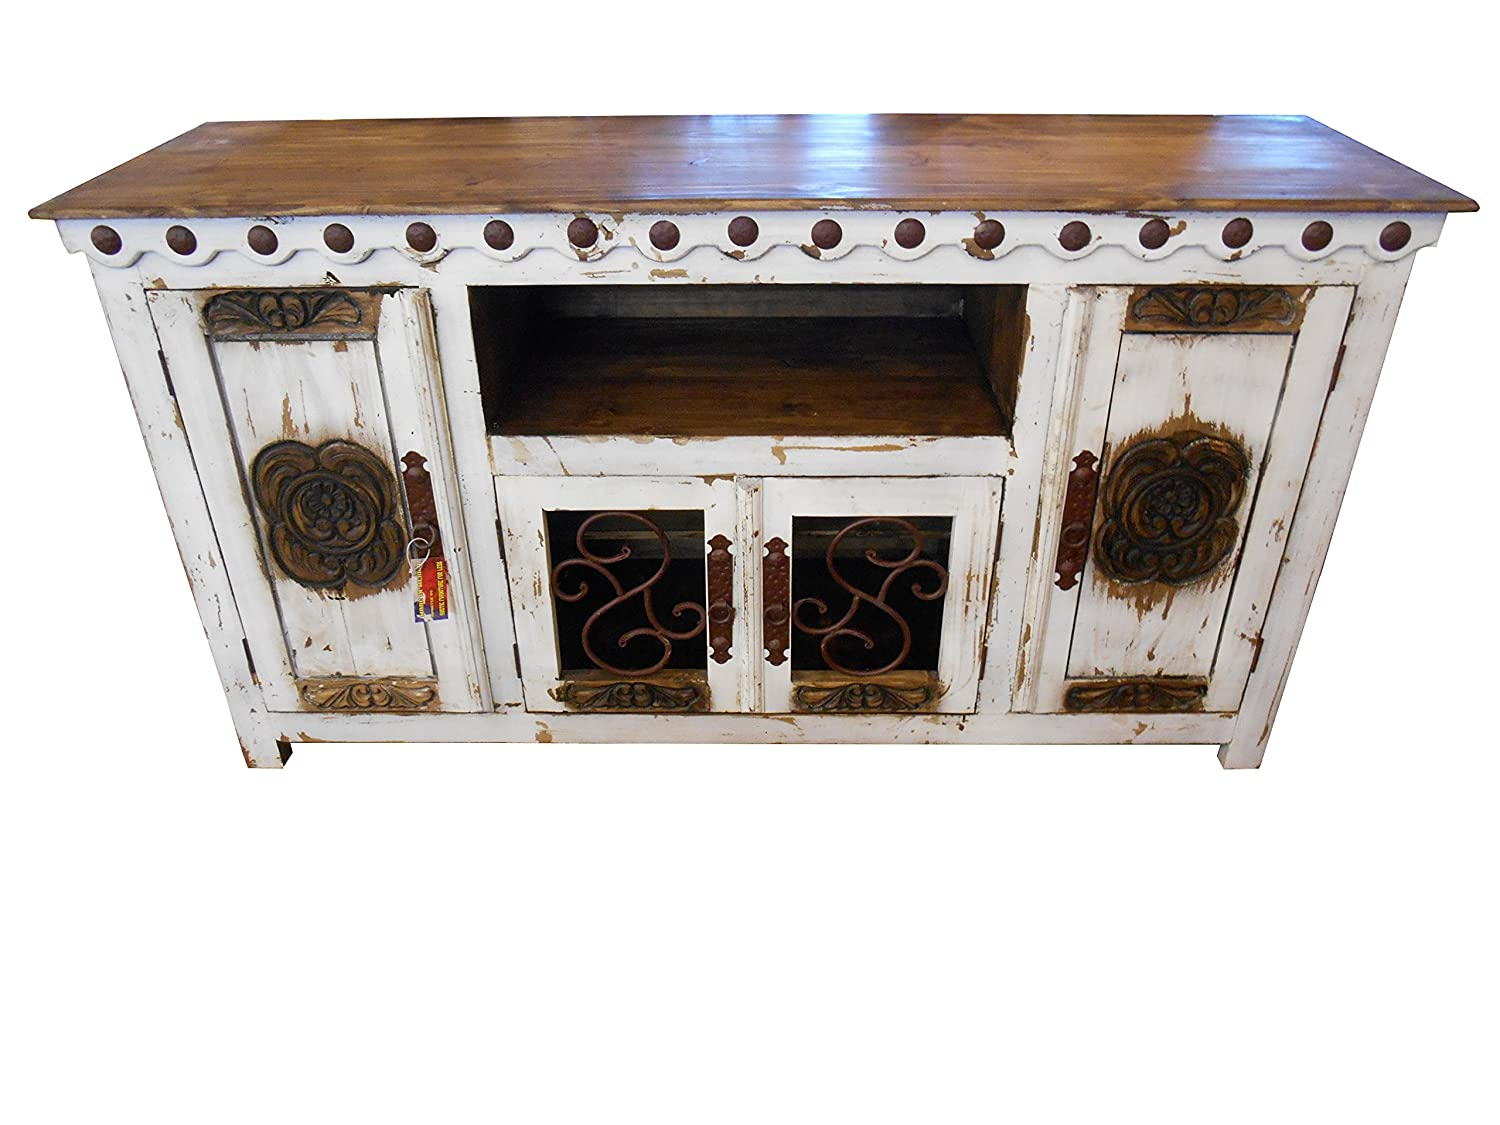 Amazon hi end rustic medieval hand scrape 67 inch tv stand amazon hi end rustic medieval hand scrape 67 inch tv stand available in 3 colors white kitchen dining geotapseo Images